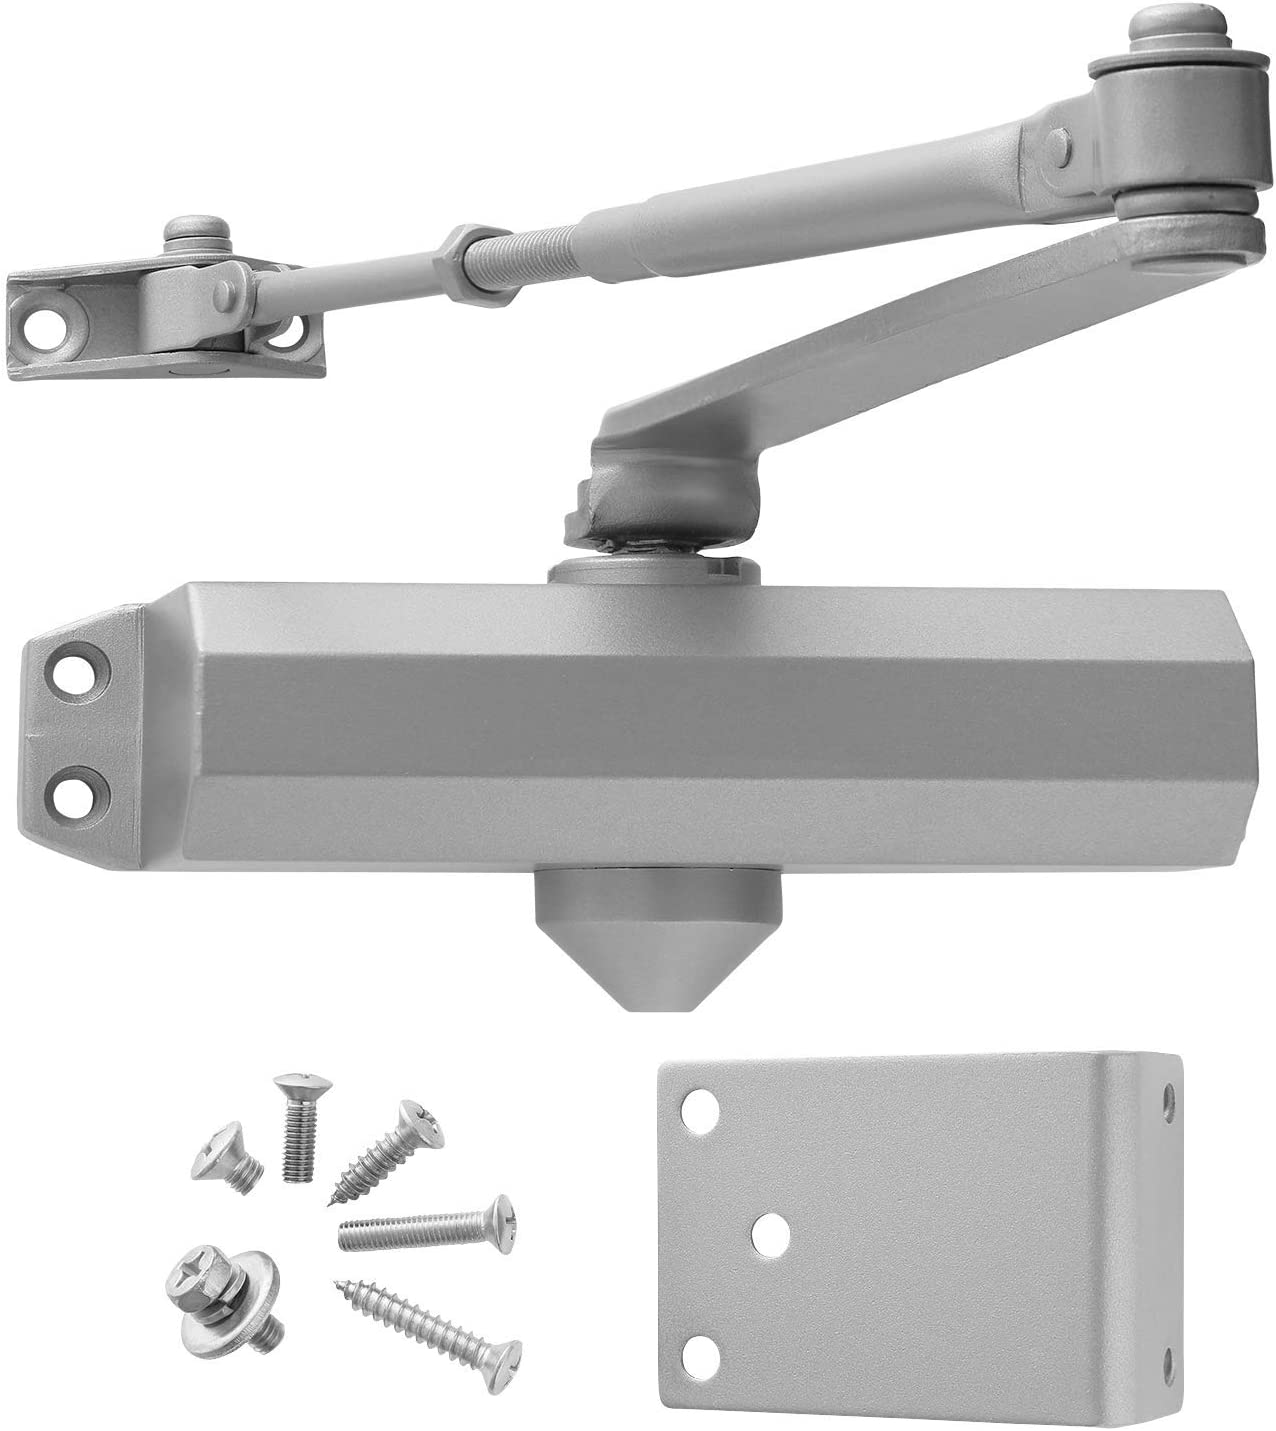 Standard Duty Adjustable Commercial Door Closer Power Size #3 for Interior and Light Commercial Doors by Lawrence Hardware LH303 Automatic Closing and Latching